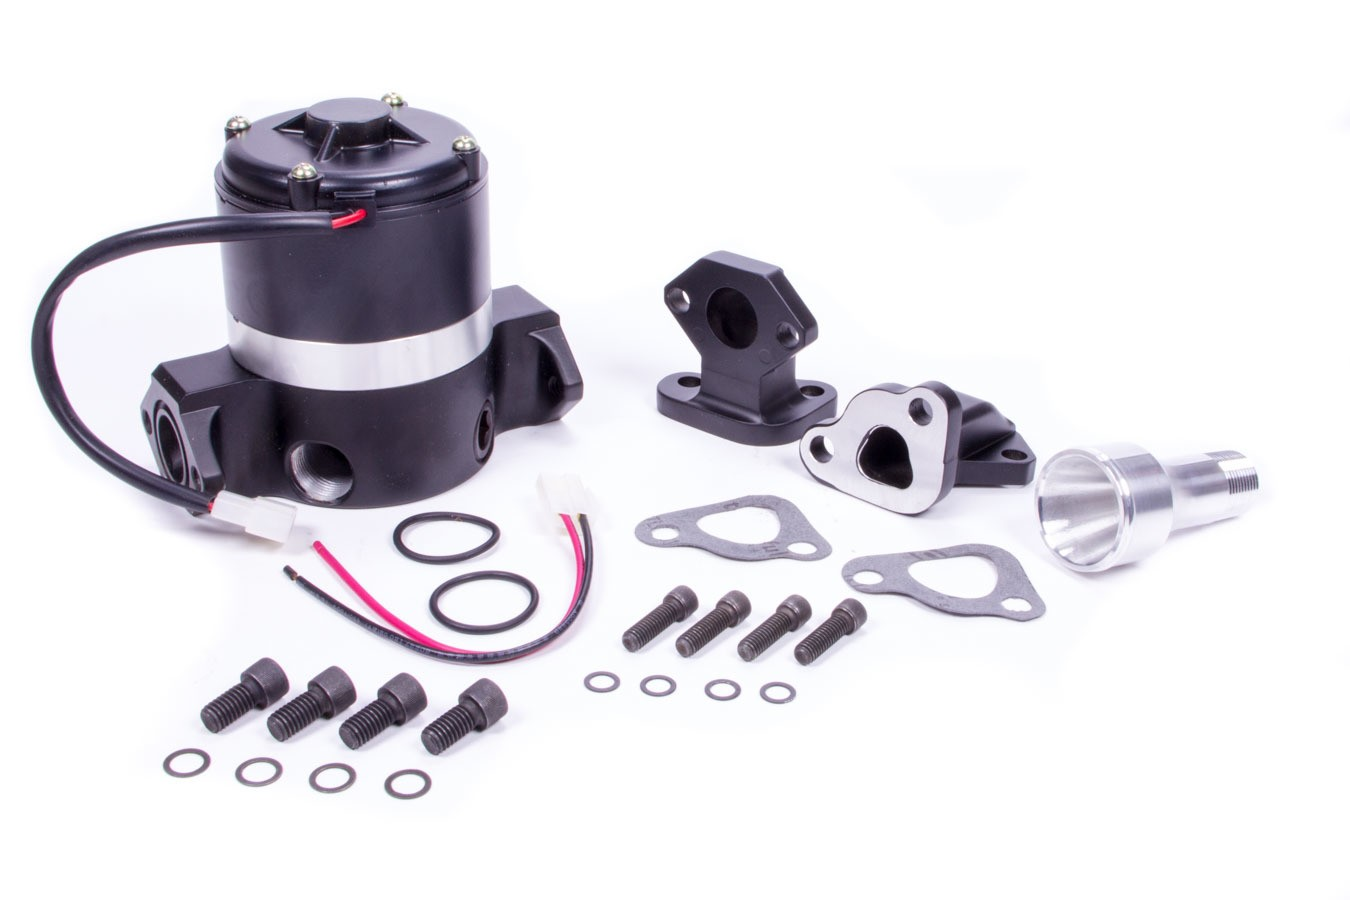 PRW Industries 4435007 Water Pump, Electric, High Flow, 3/4 in NPT inlet, 7.000 in Height, Gaskets Included, Aluminum, Black, Small Block Chevy, Kit